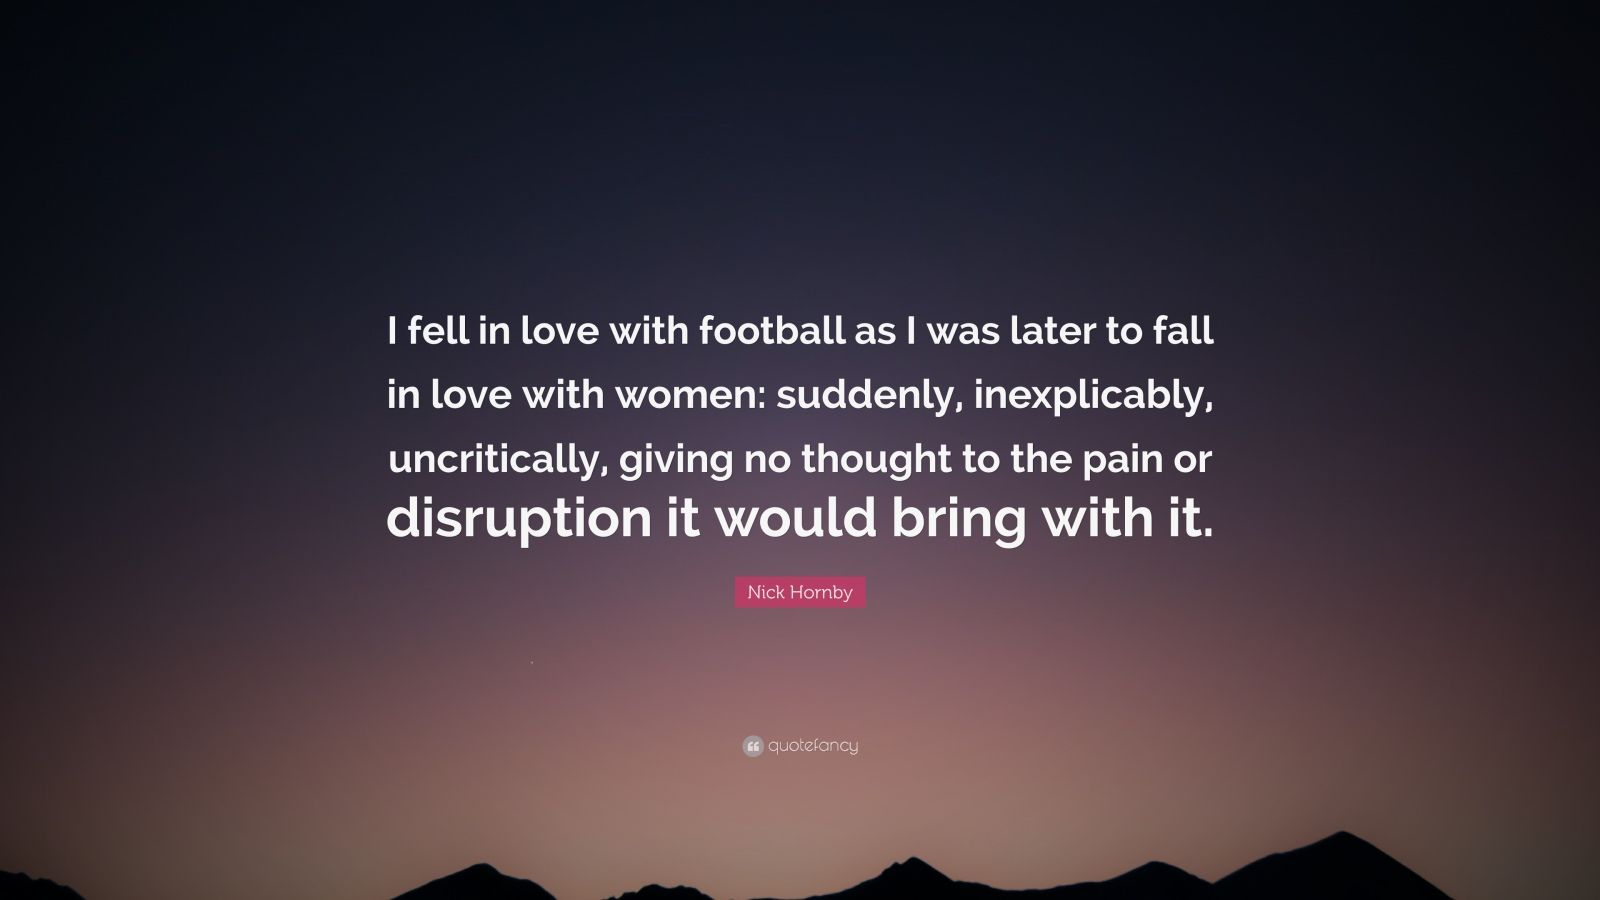 "Nick Hornby Quote: ""I fell in love with football as I was later to fall in love with women: suddenly, inexplicably, uncritically, giving no thought to the pain or disruption it would bring with it."""